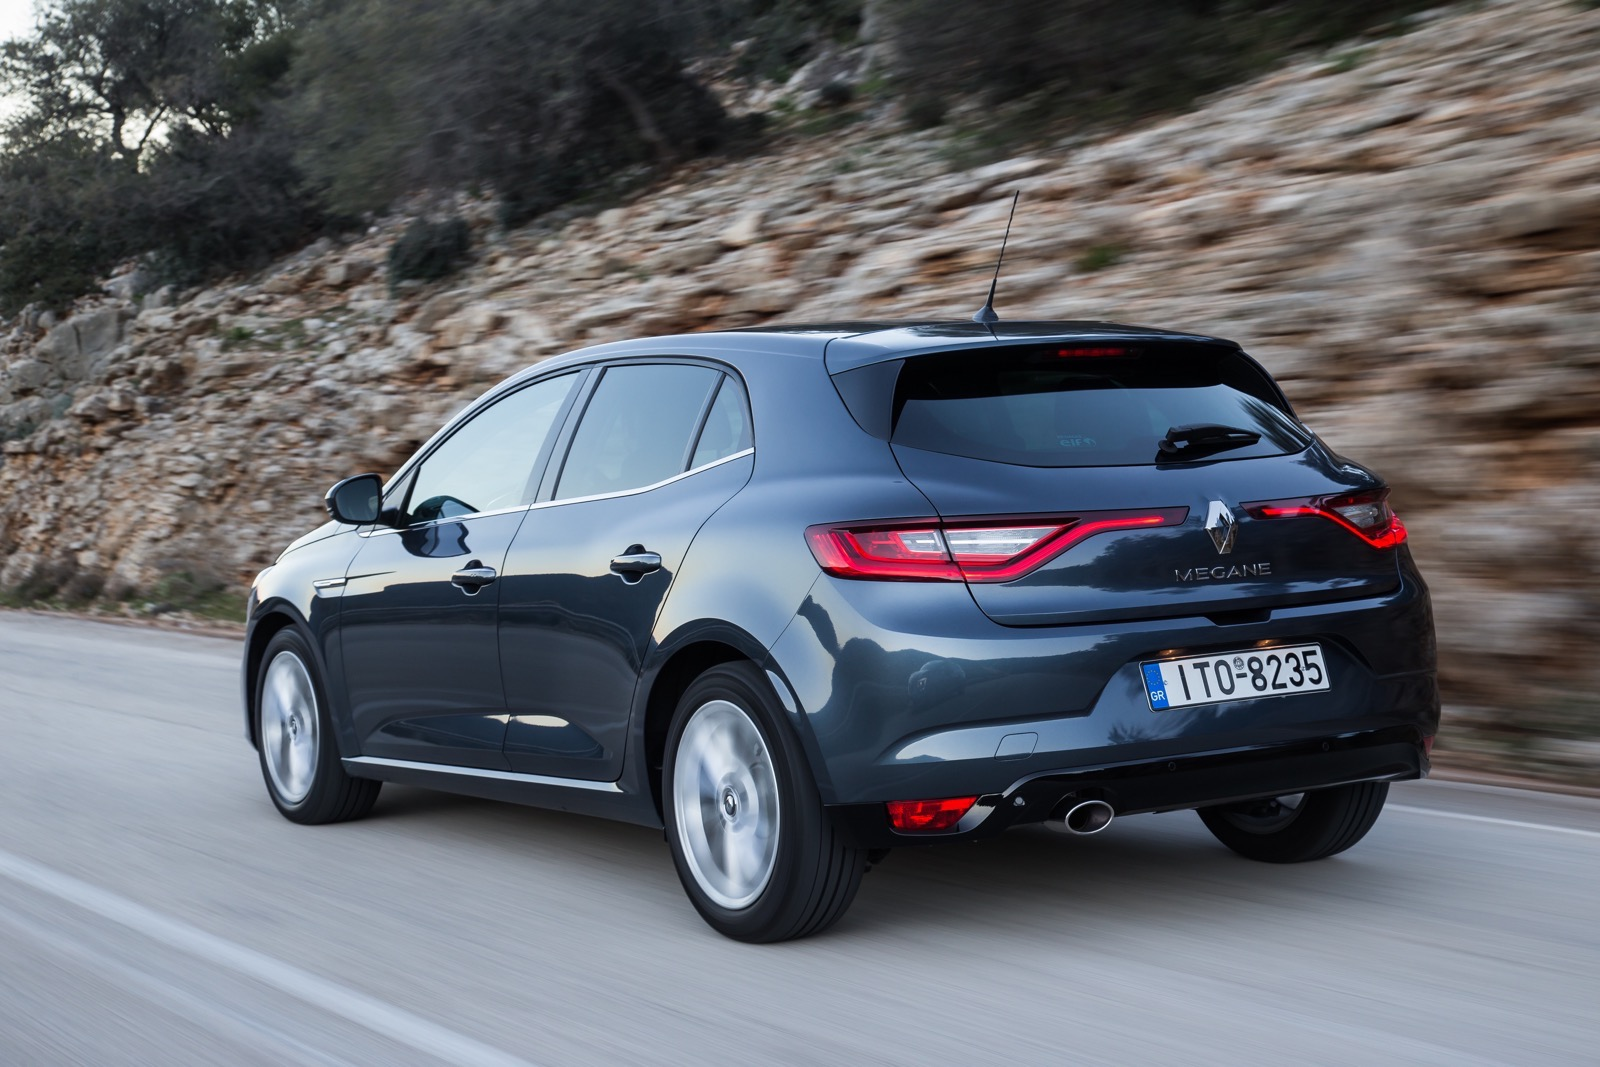 First_Drive_Renault_Megane_128